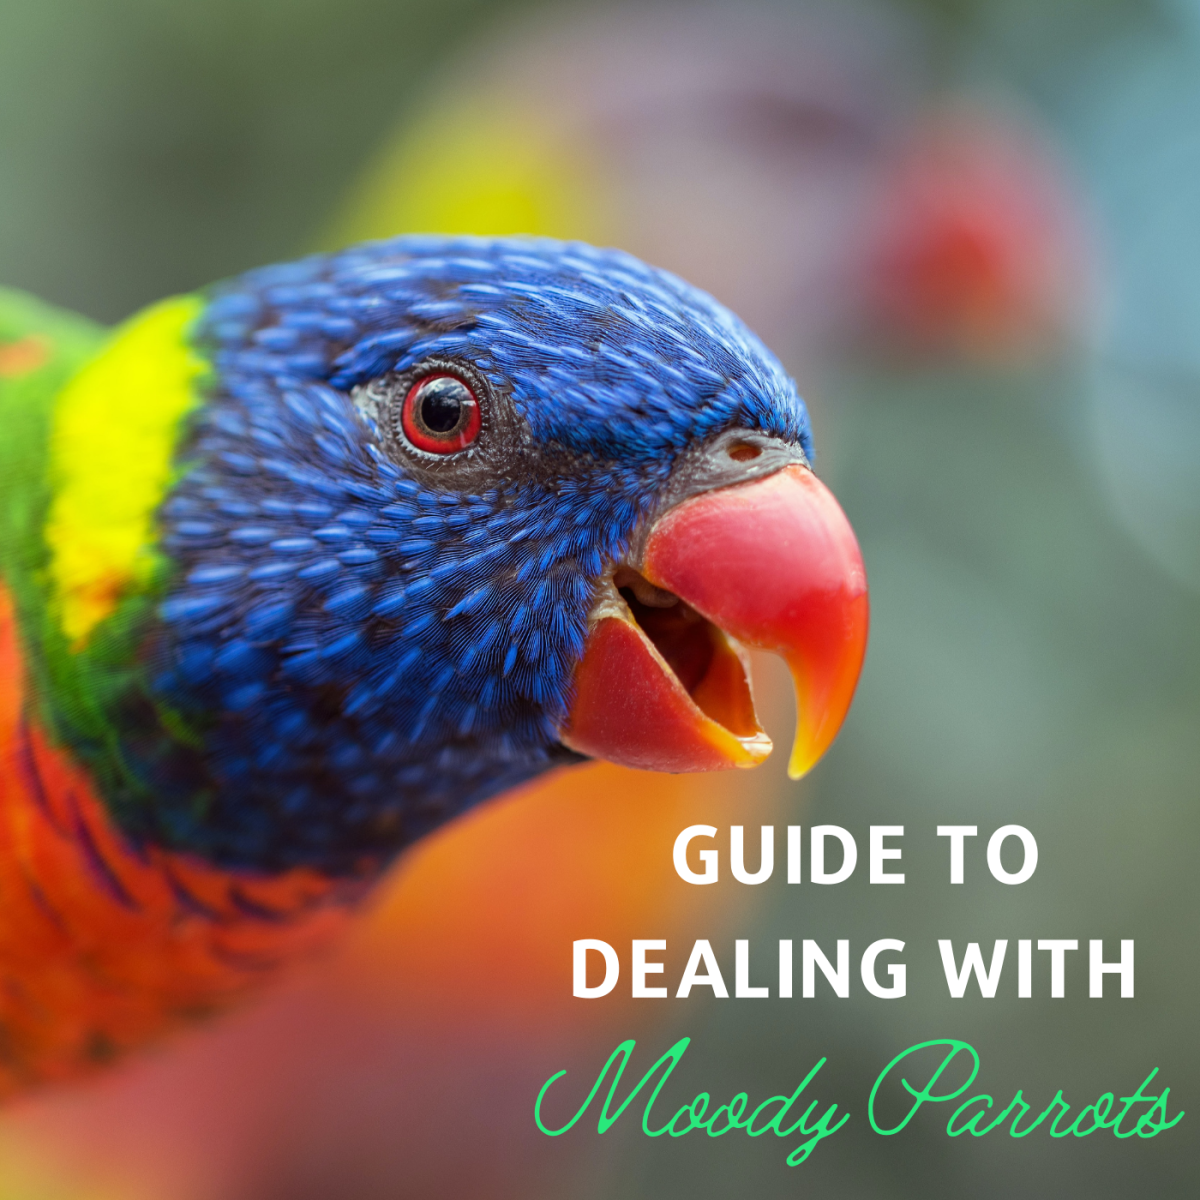 How to Minimize Hormonal Aggression in a Moody Parrot